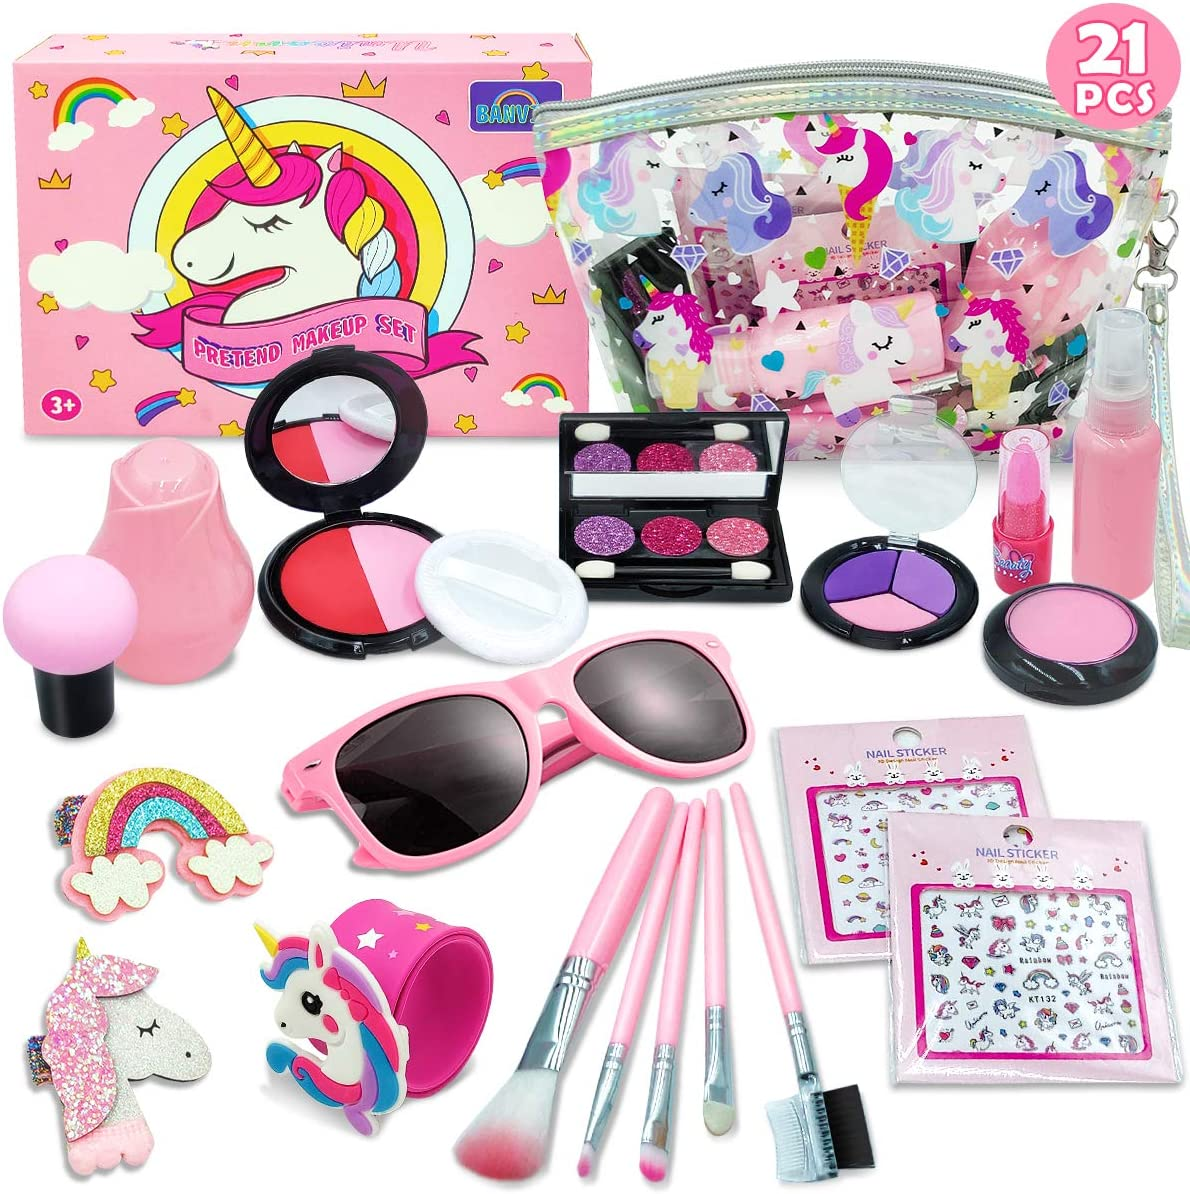 Banvih - Play Makeup for Girls - 21 Piece Pretend Makeup for Girls - My First Purse Kid Makeup Kit for Girls and Toddlers with Unicorn Cosmetic Bag